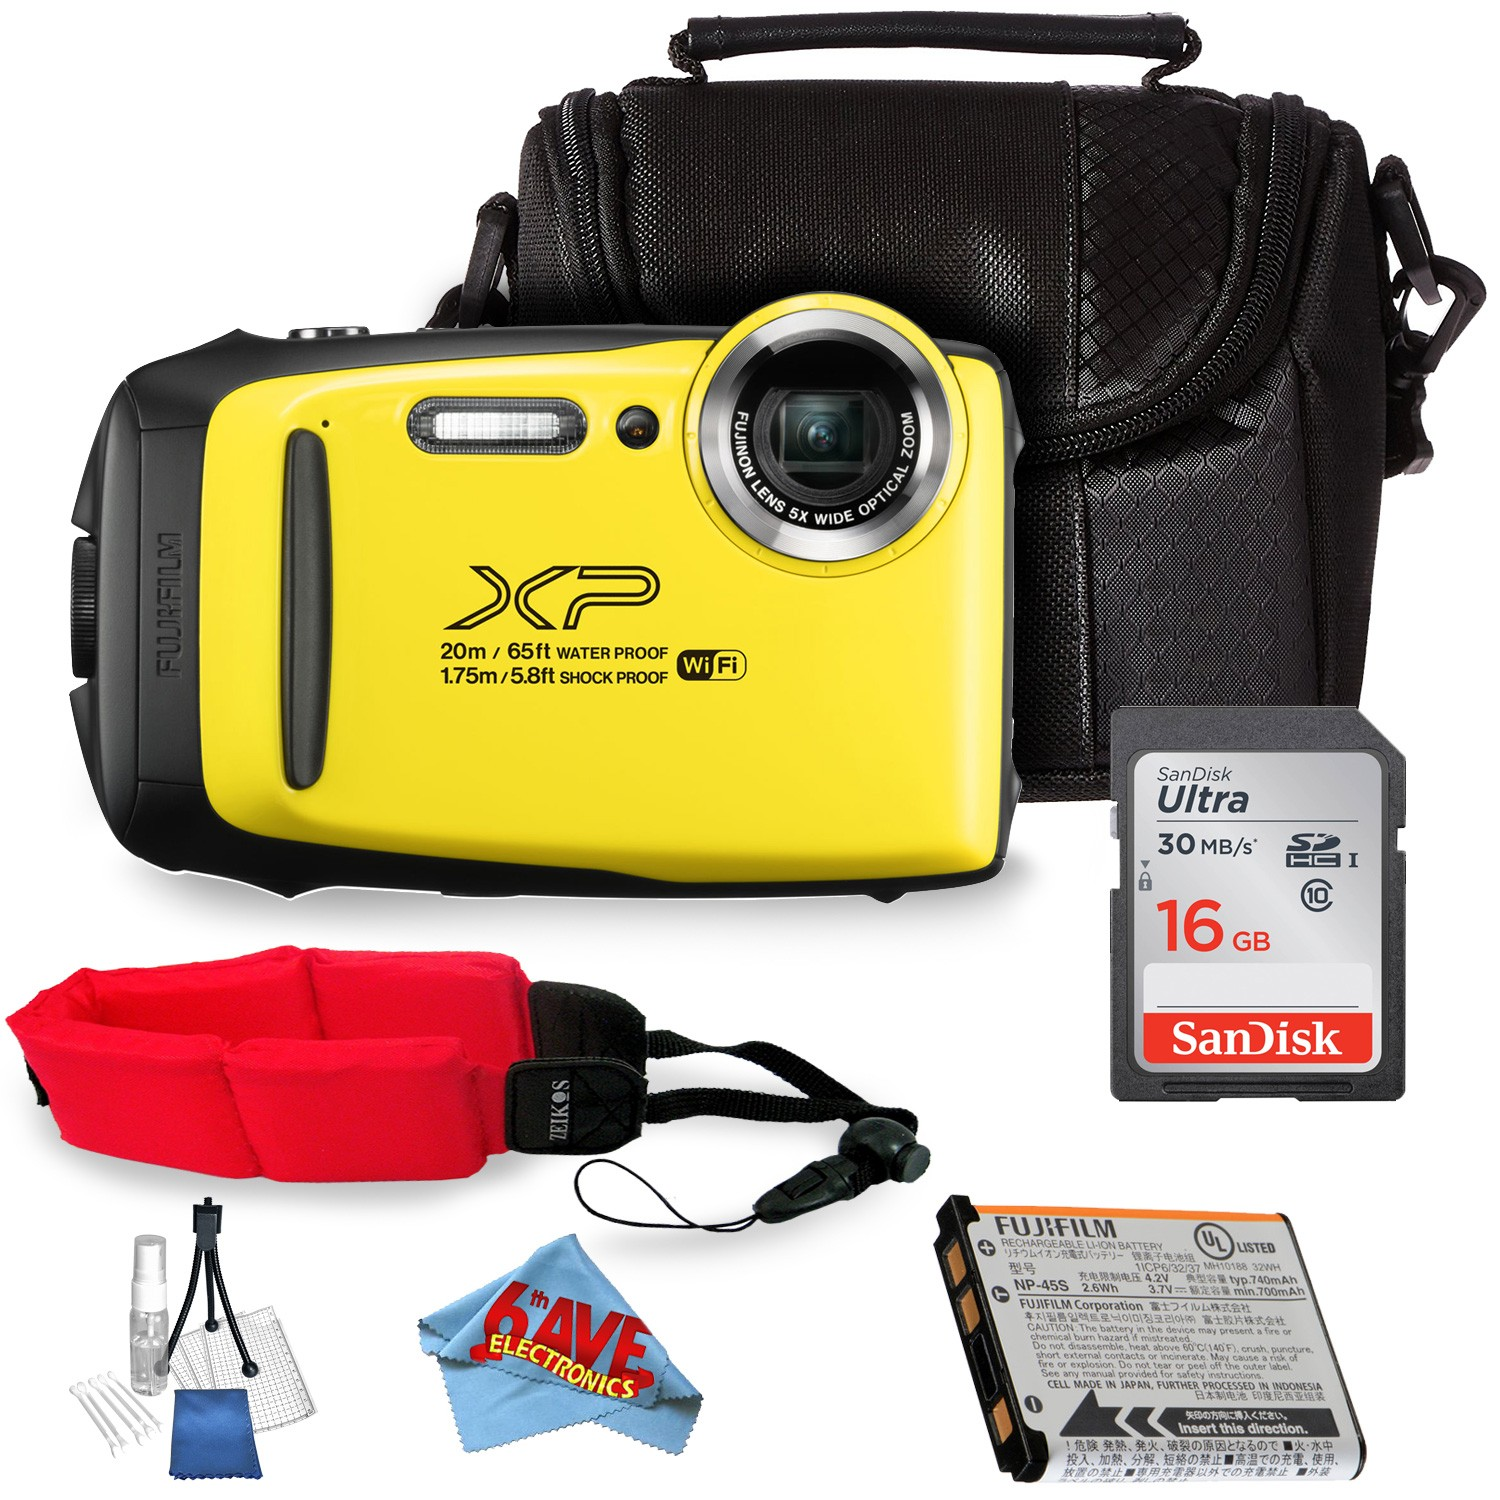 Fujifilm FinePix XP130 Digital Camera (Silver) Bundle International Model